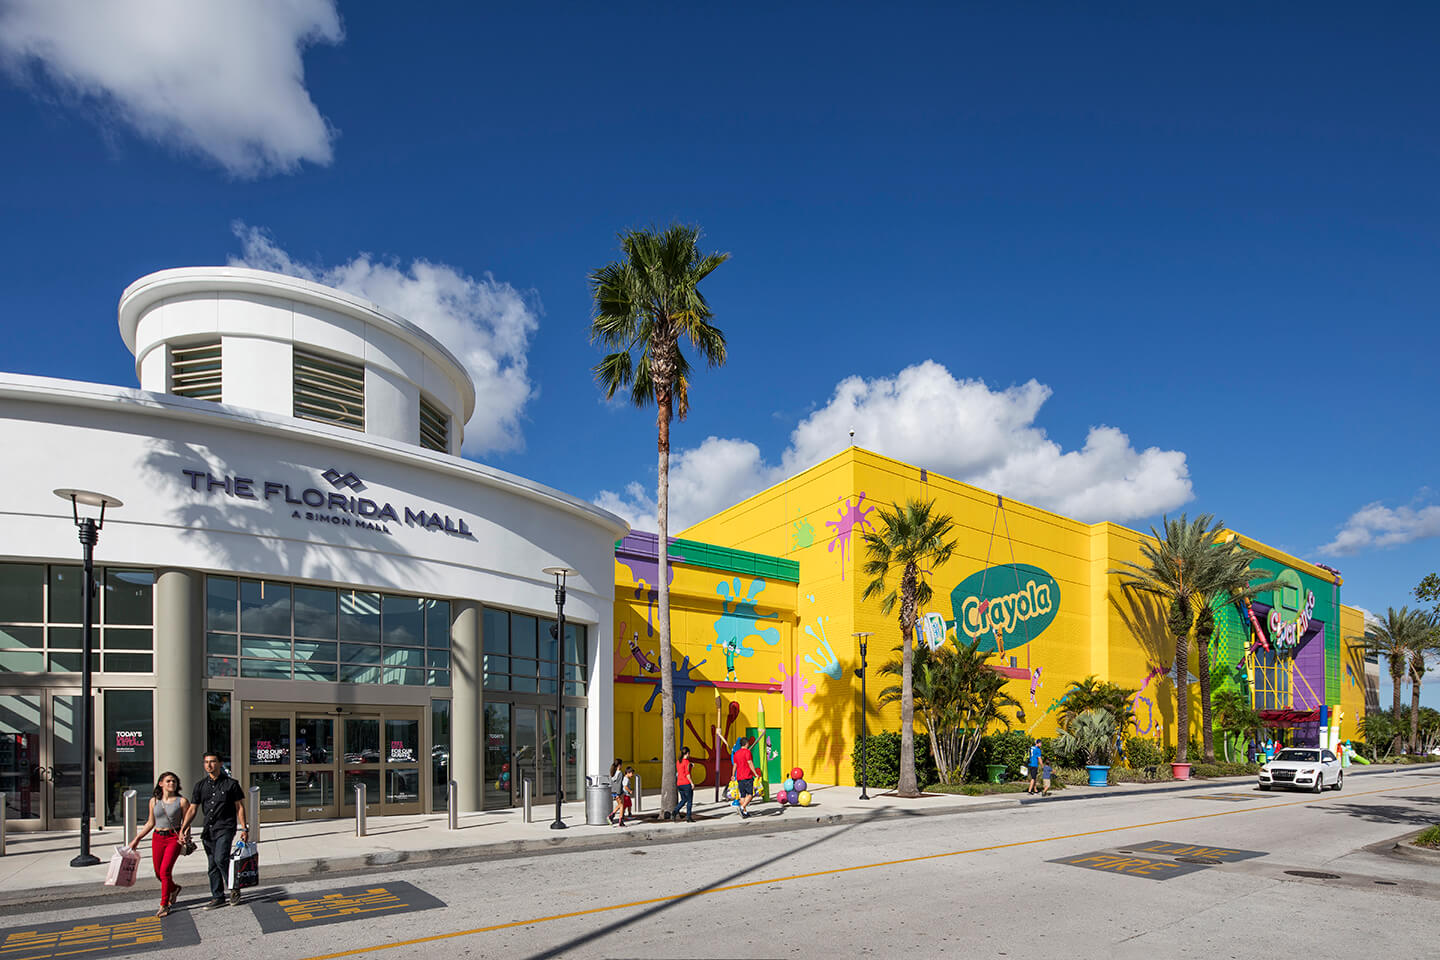 8 reasons you have to visit The Florida Mall